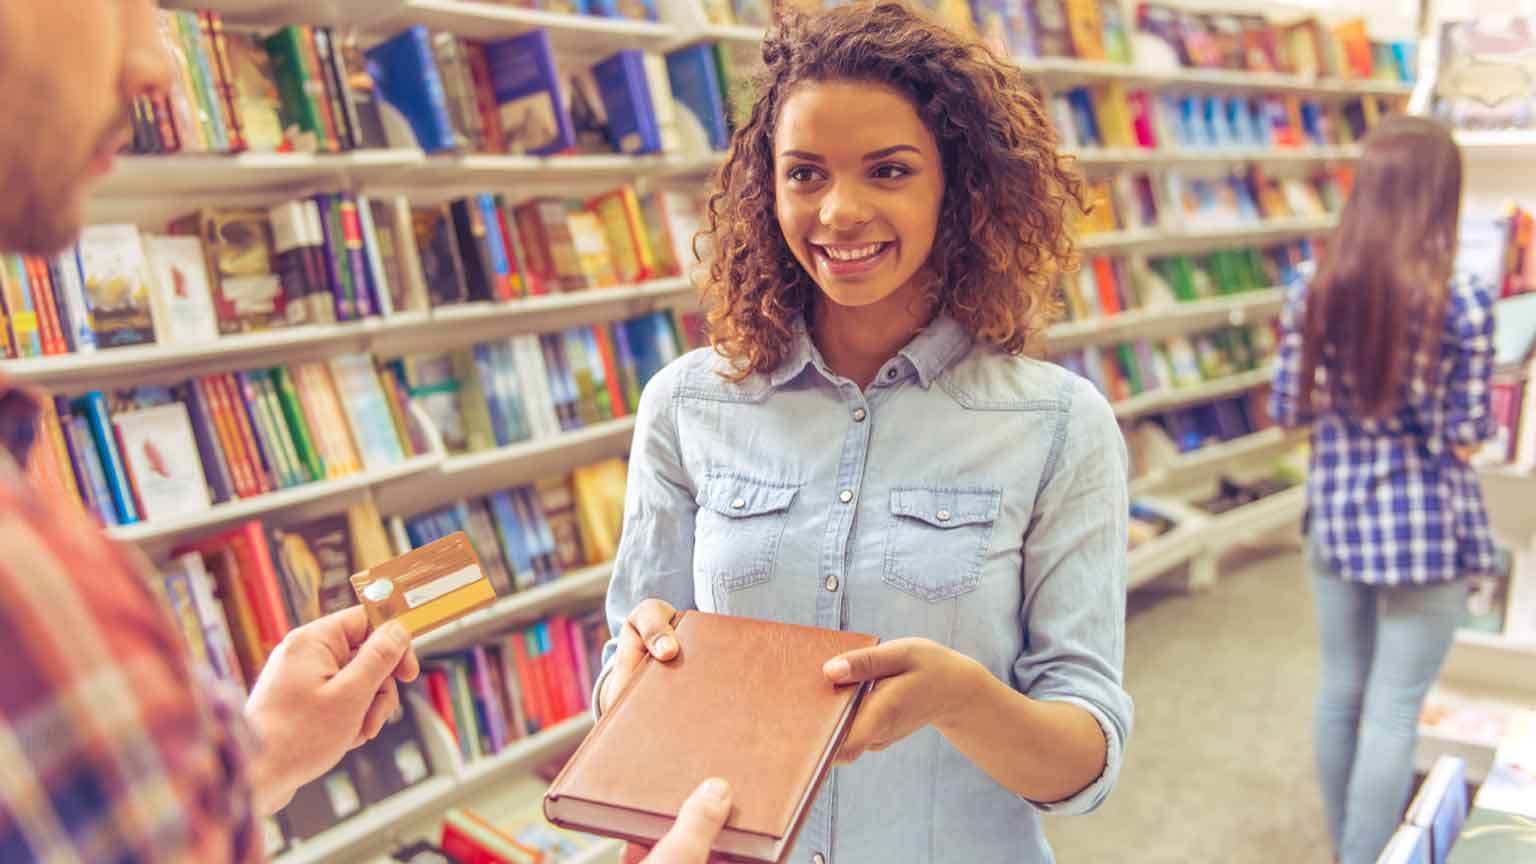 student buying book at the bookshop using a credit card